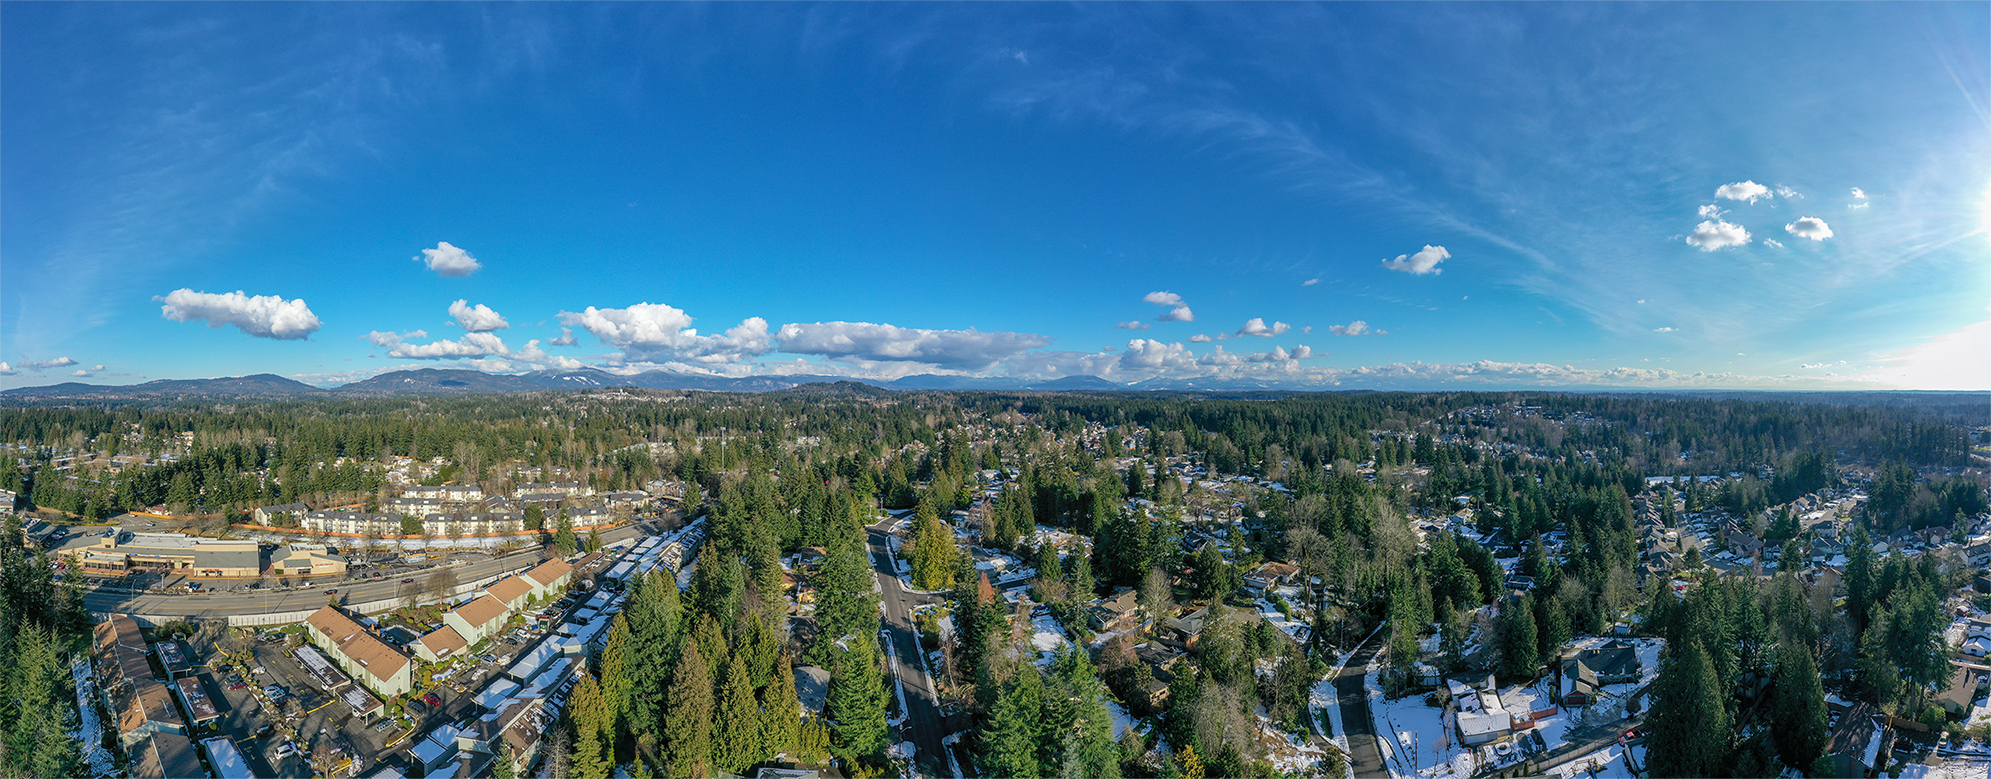 02_21_2019_Afternoon_Clouds_Pano_SMALL.jpg